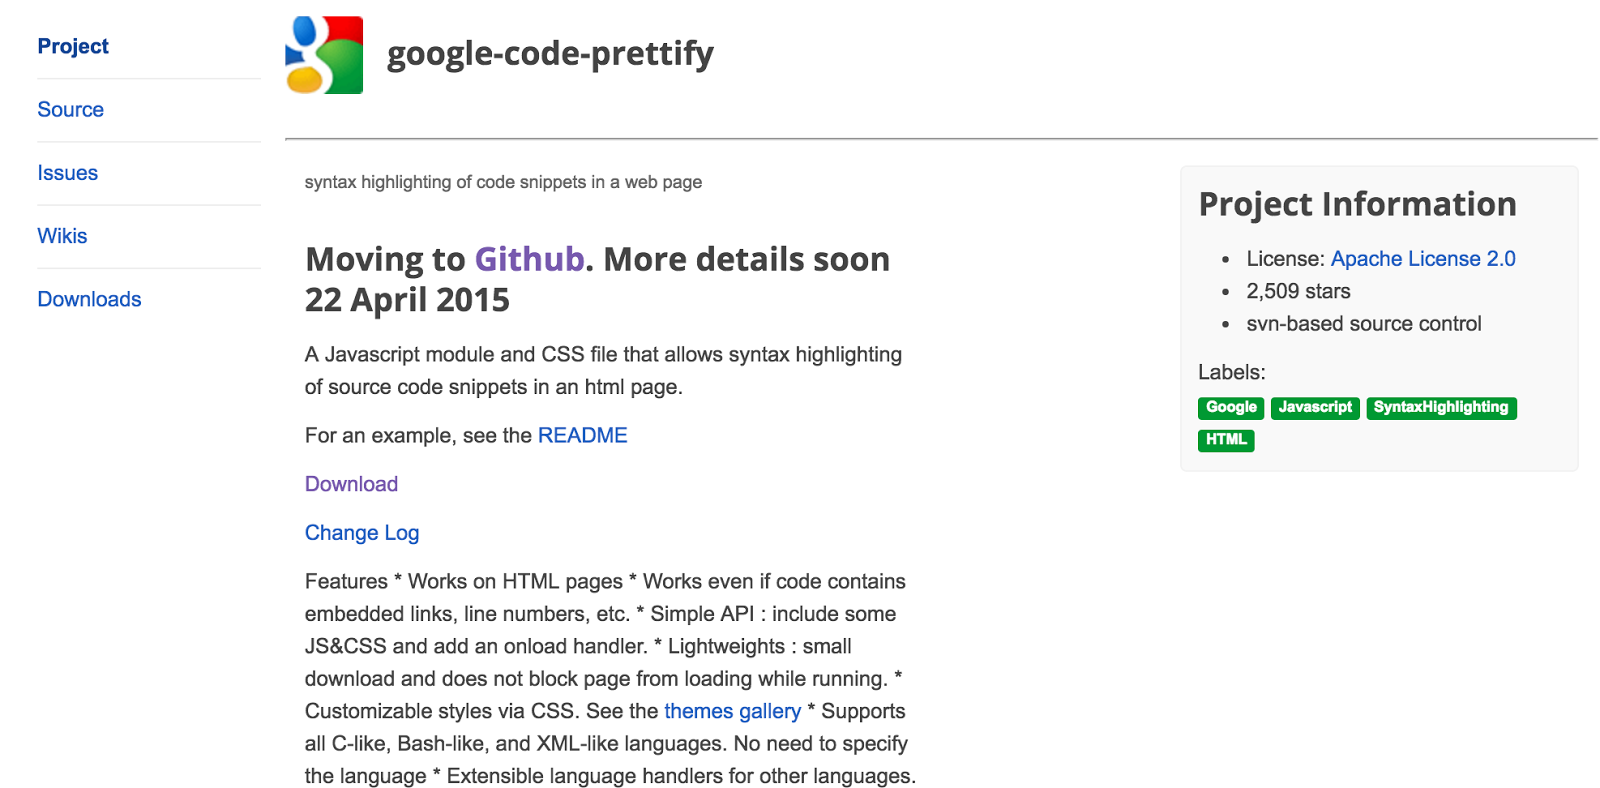 google-code-prettify syntax highlighters for web